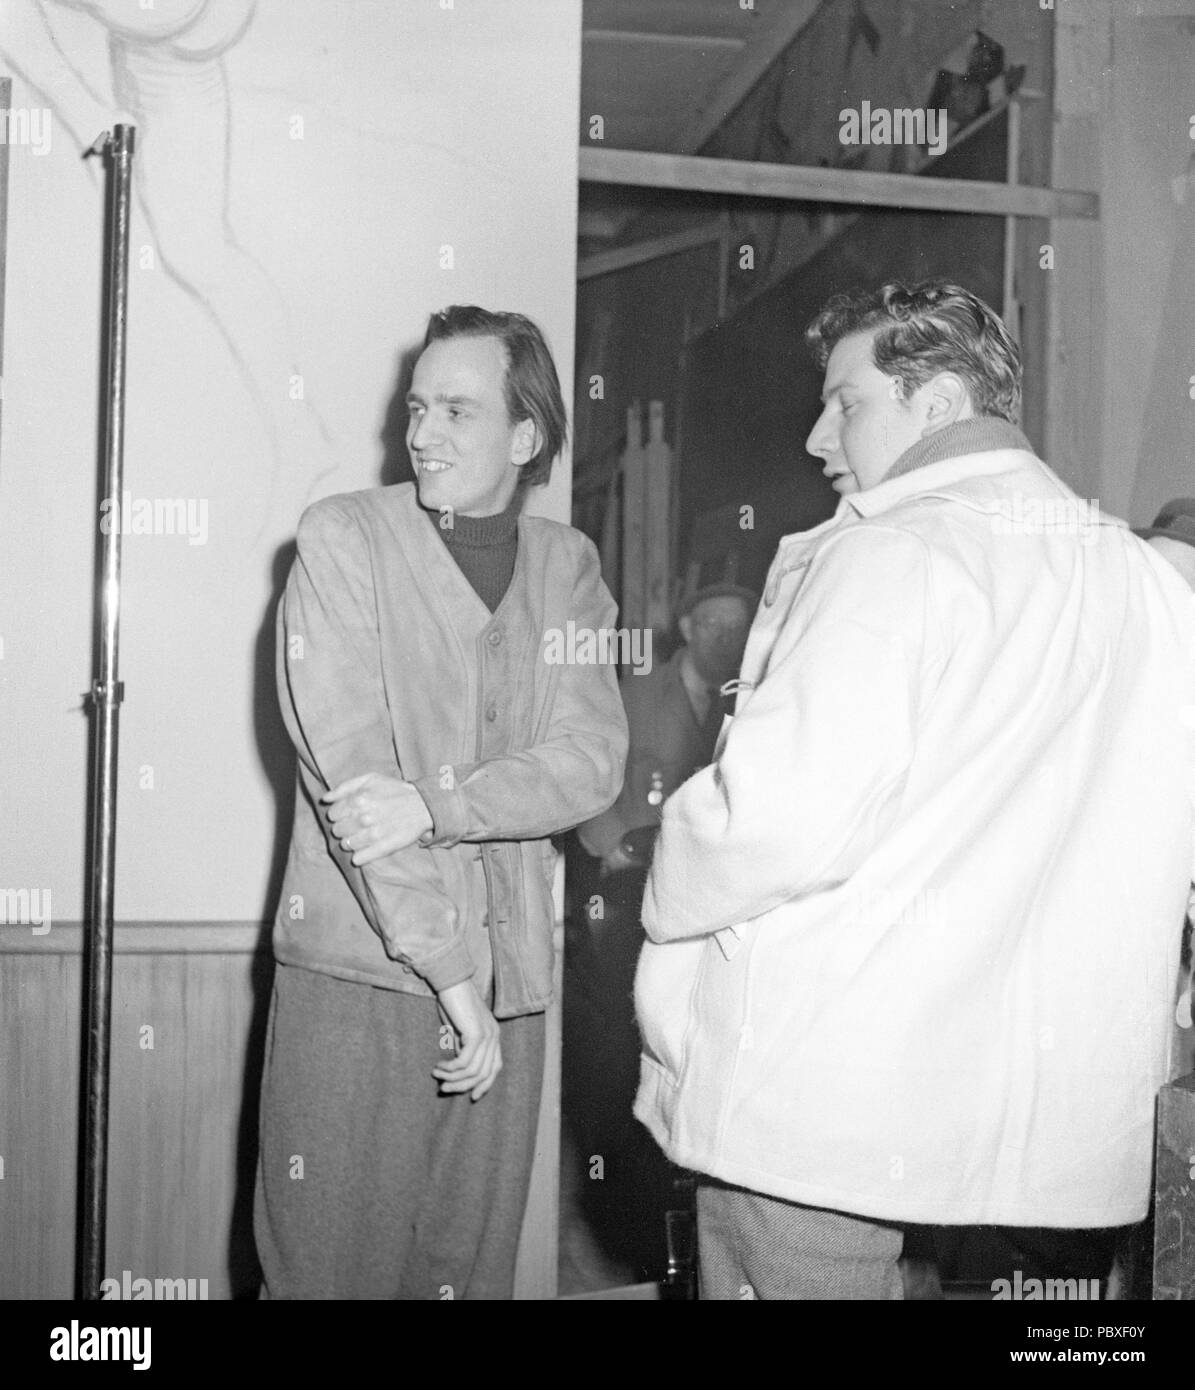 Ingmar Bergman. 1918-2007.  Swedish film director. Pictured here 1948 with actor Peter Ustinov who made a stage adaption of Bergman's Frenzy and played the leading part as Caligula on St. Martin's Theatre in London this year. Photographer: Kristoffersson/AF43-2 - Stock Image